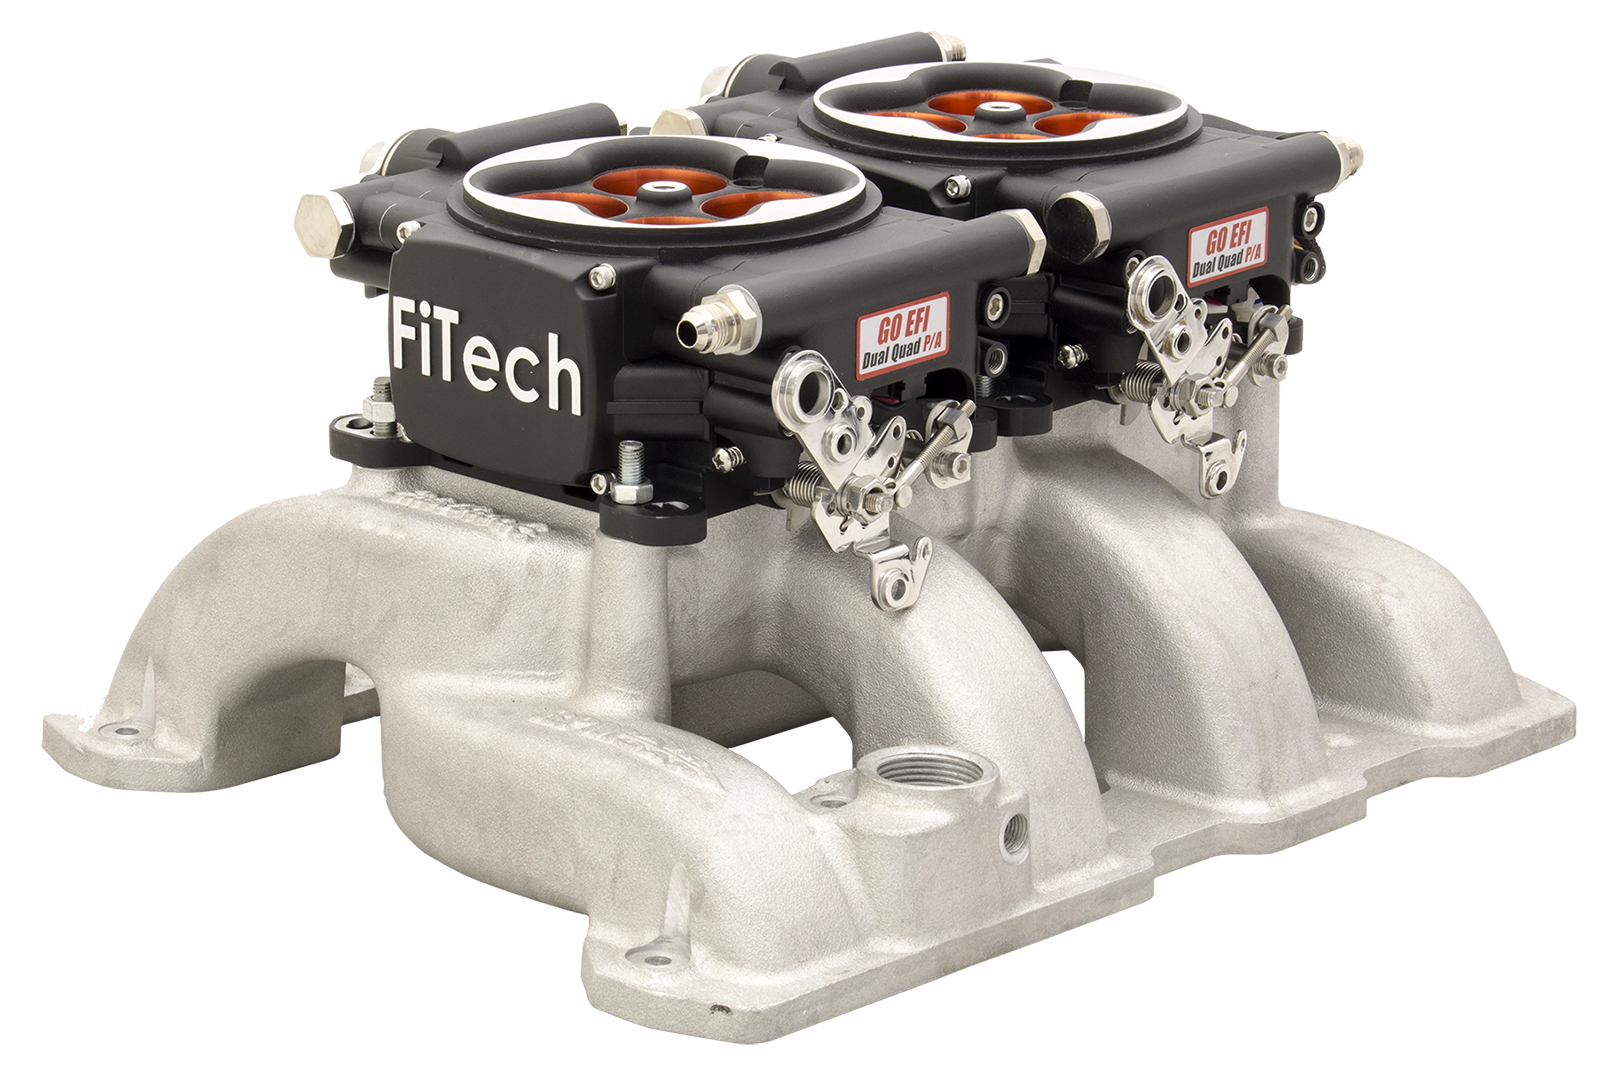 FiTech Go EFI 2x4 1200 HP EFI System - Power Adder - Matte Black Finish - 30064